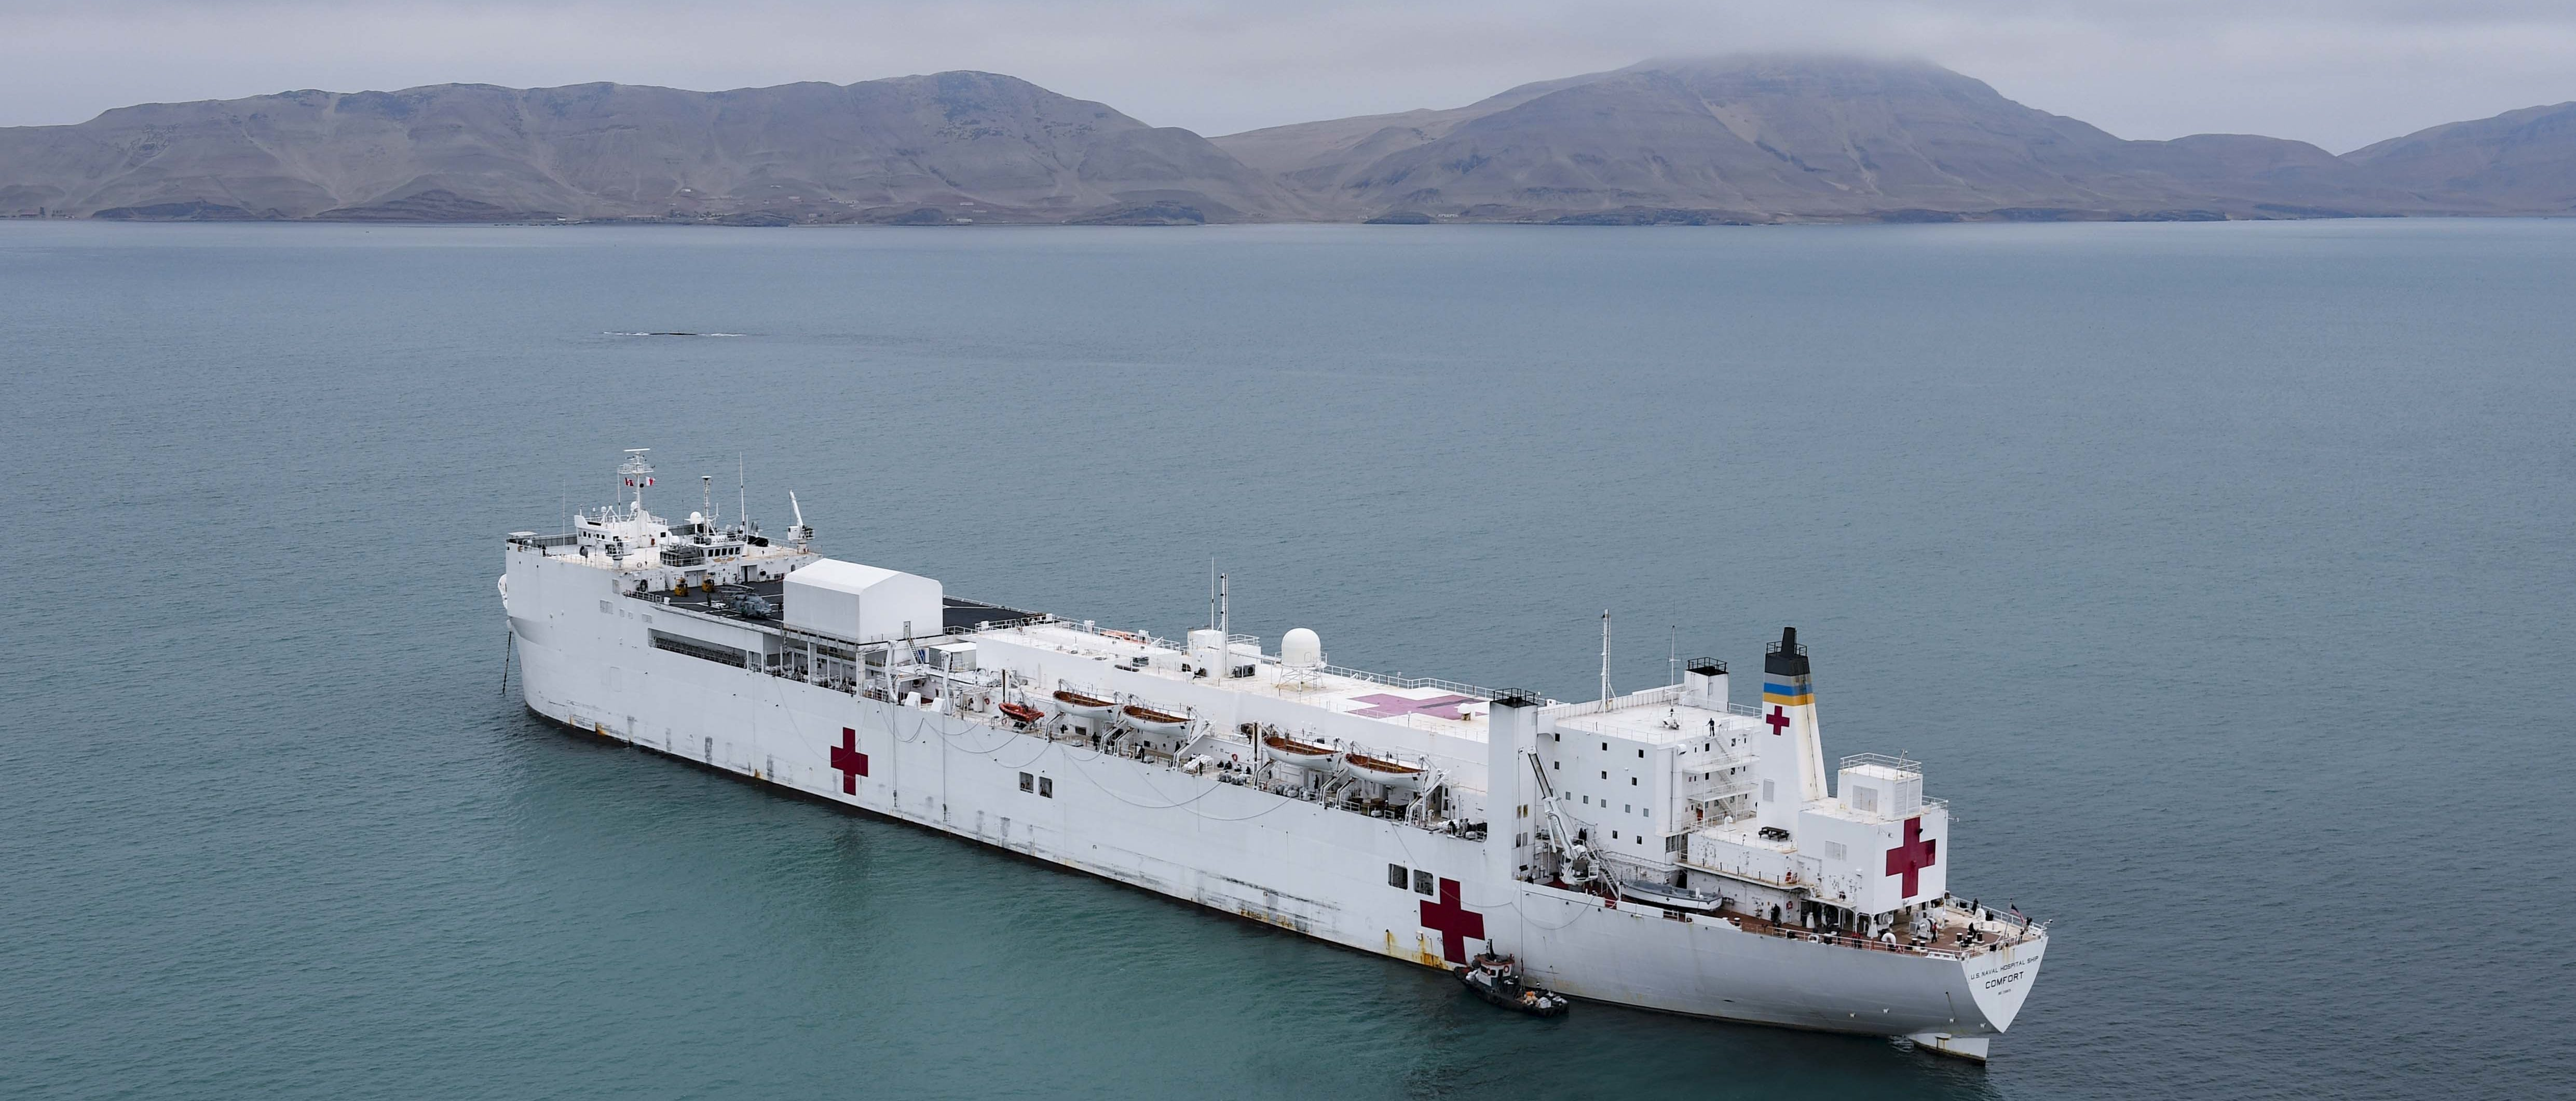 The hospital ship USNS Comfort (T-AH 20) is anchored off the coast of Callao, Peru, on July 8, 2019. (U.S. Navy photo by Mass Communication Specialist 2nd Class Morgan K. Nall)